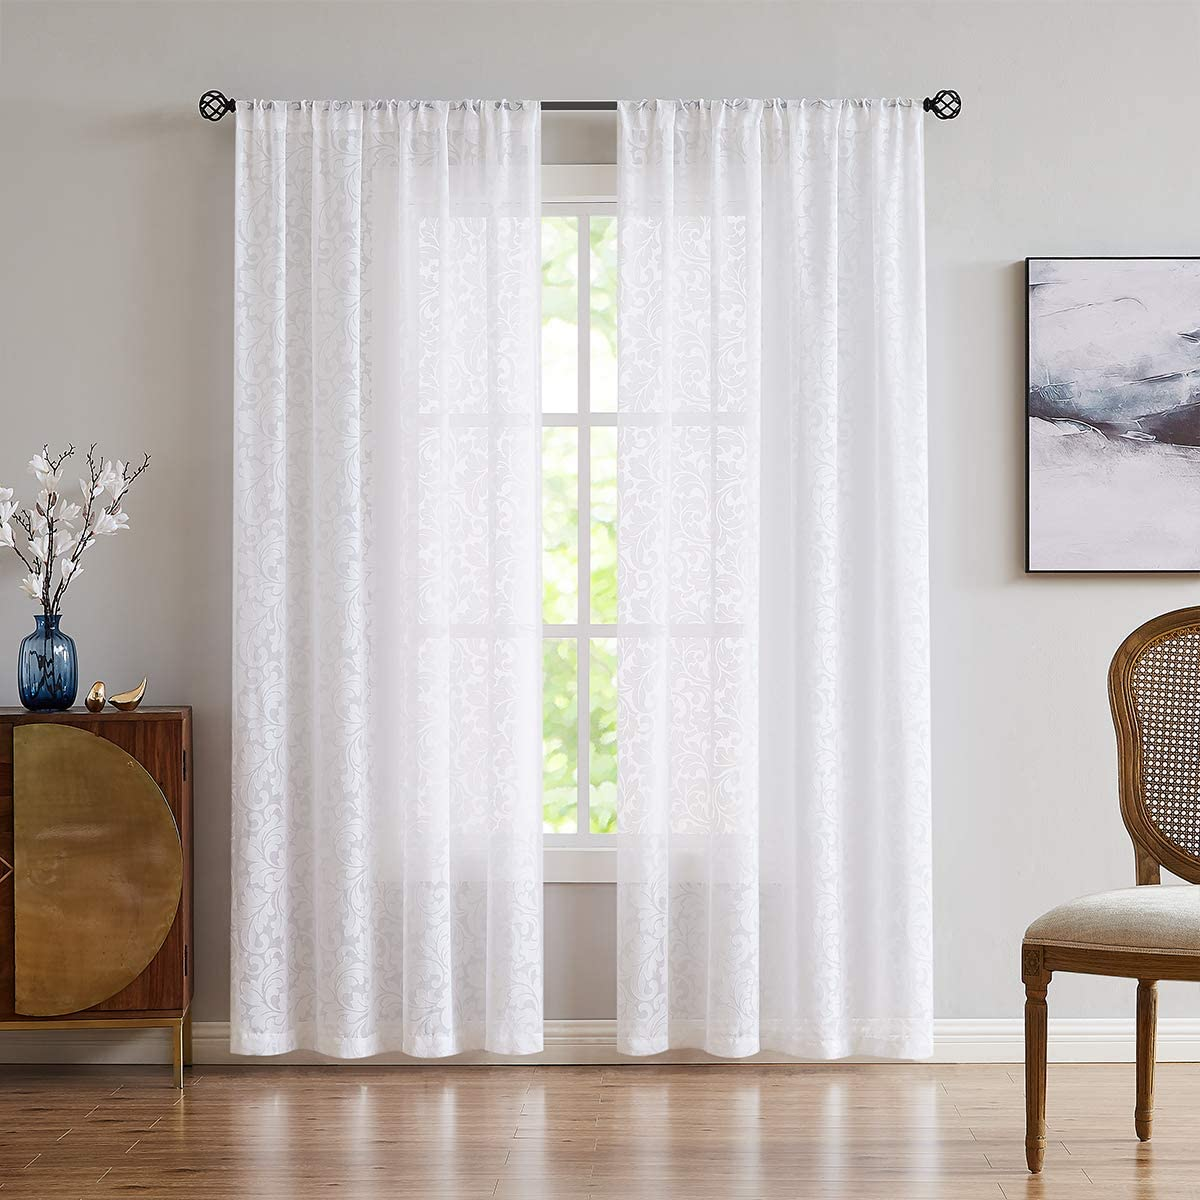 Treatmentex Sheer White Curtains for Bedroom with Scroll Leaf Pattern 95 Long Transparent Rod Pocket Voile Window Draperies 54 x2Panels